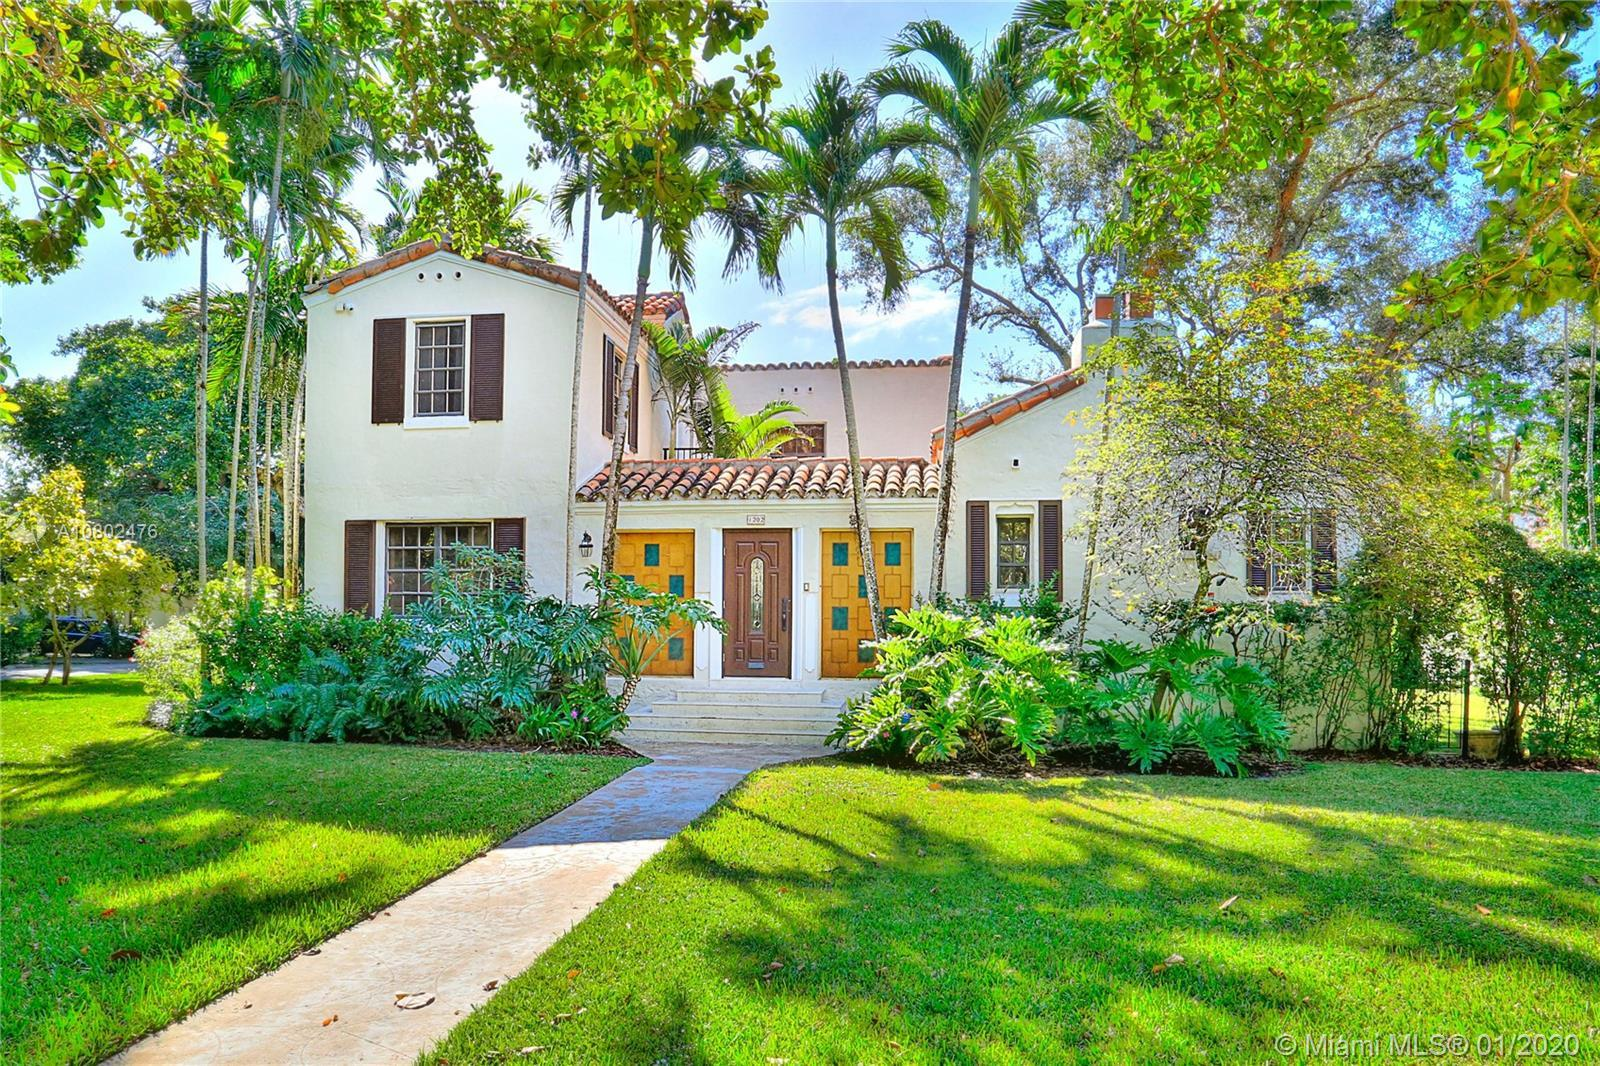 Charming Old Spanish home on the prettiest street in the Gables just steps from the Granada Golf Cou